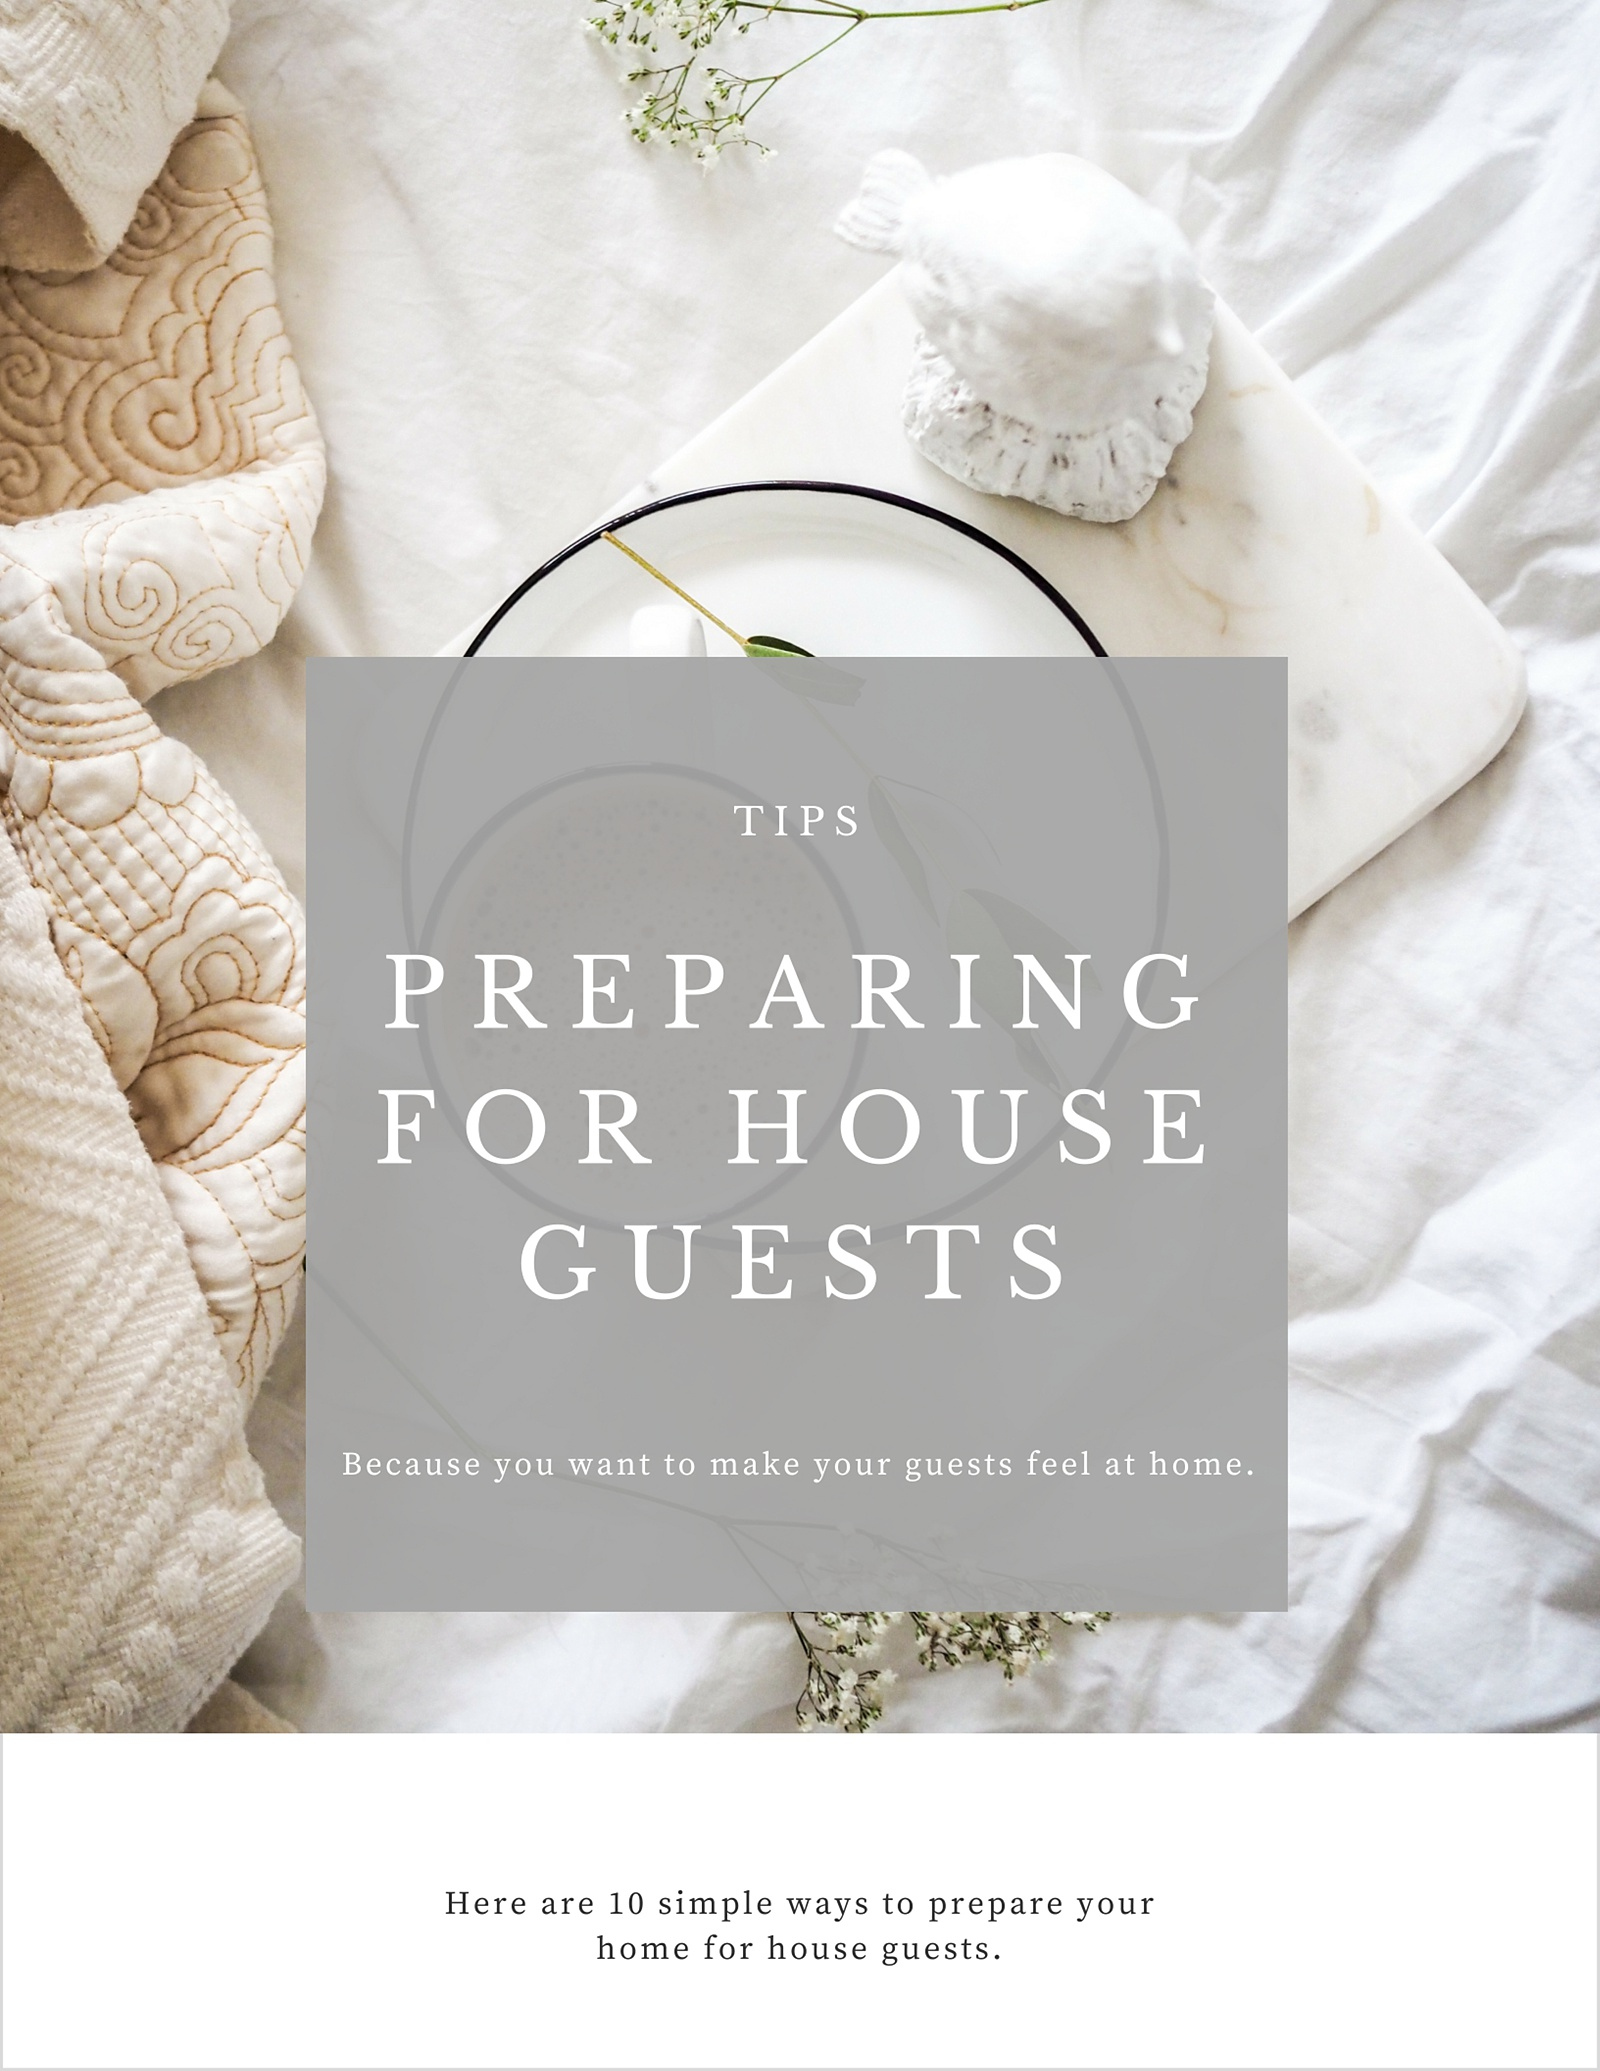 10 Simple Ways to Prepare for House Guests